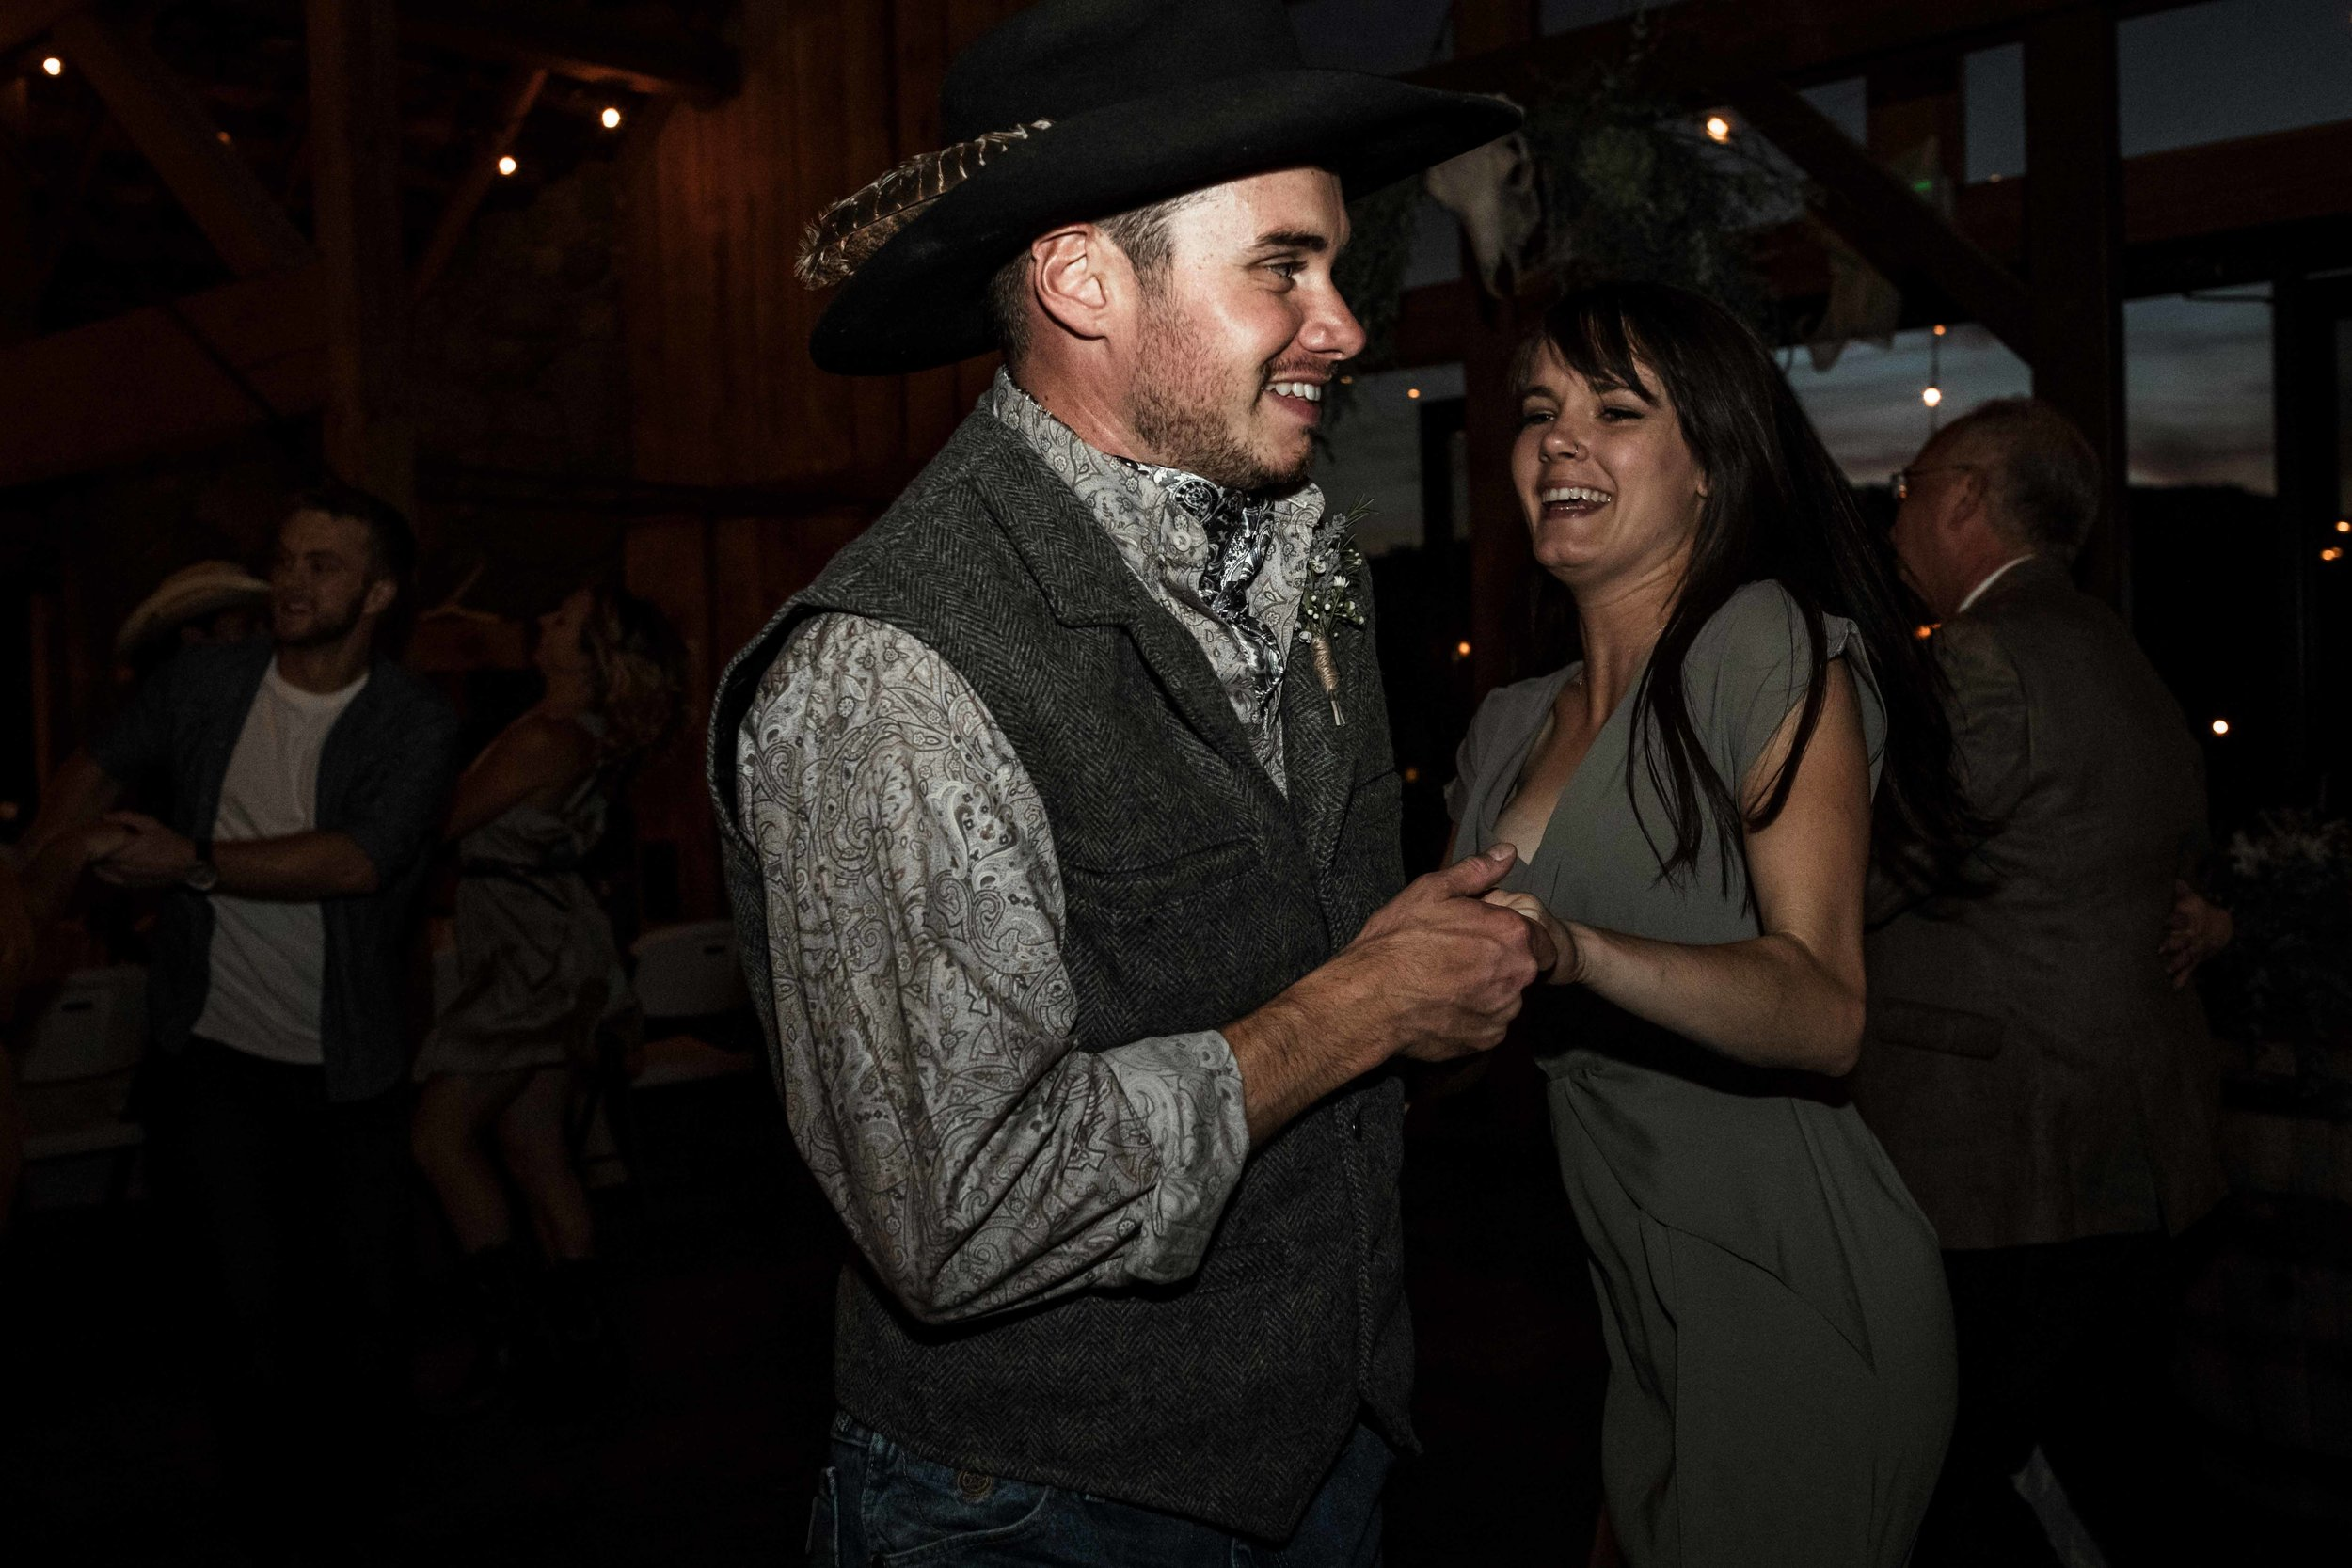 the-cattle-barn-wedding-89.jpg